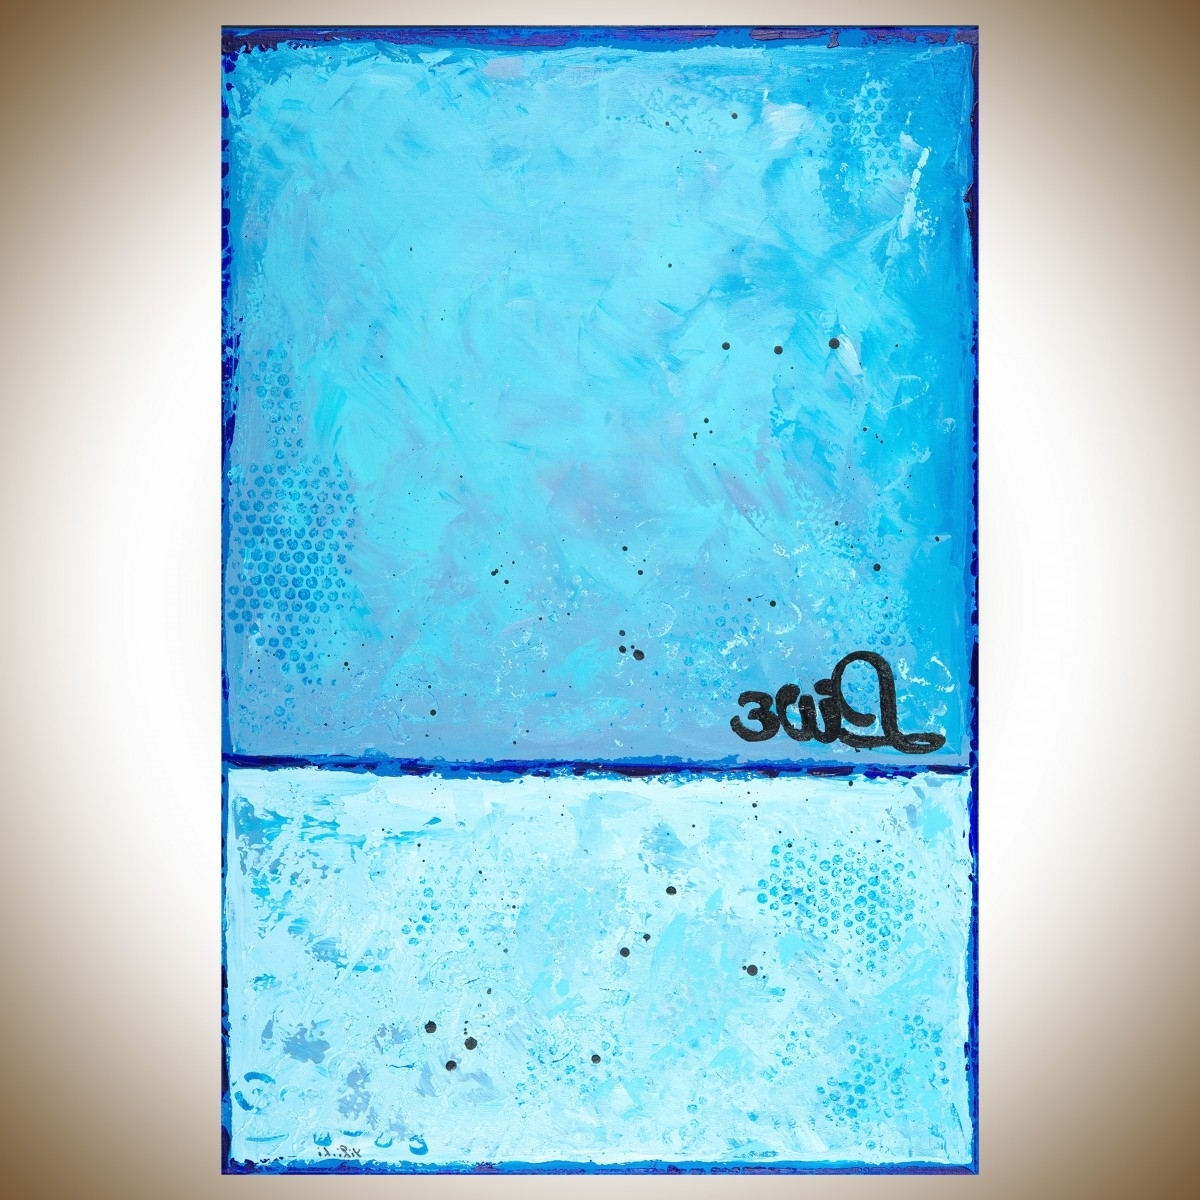 """Liveqiqigallery 36""""x24"""" Original Modern Abstract Wall Pertaining To Most Current Blue Green Abstract Wall Art (View 10 of 15)"""